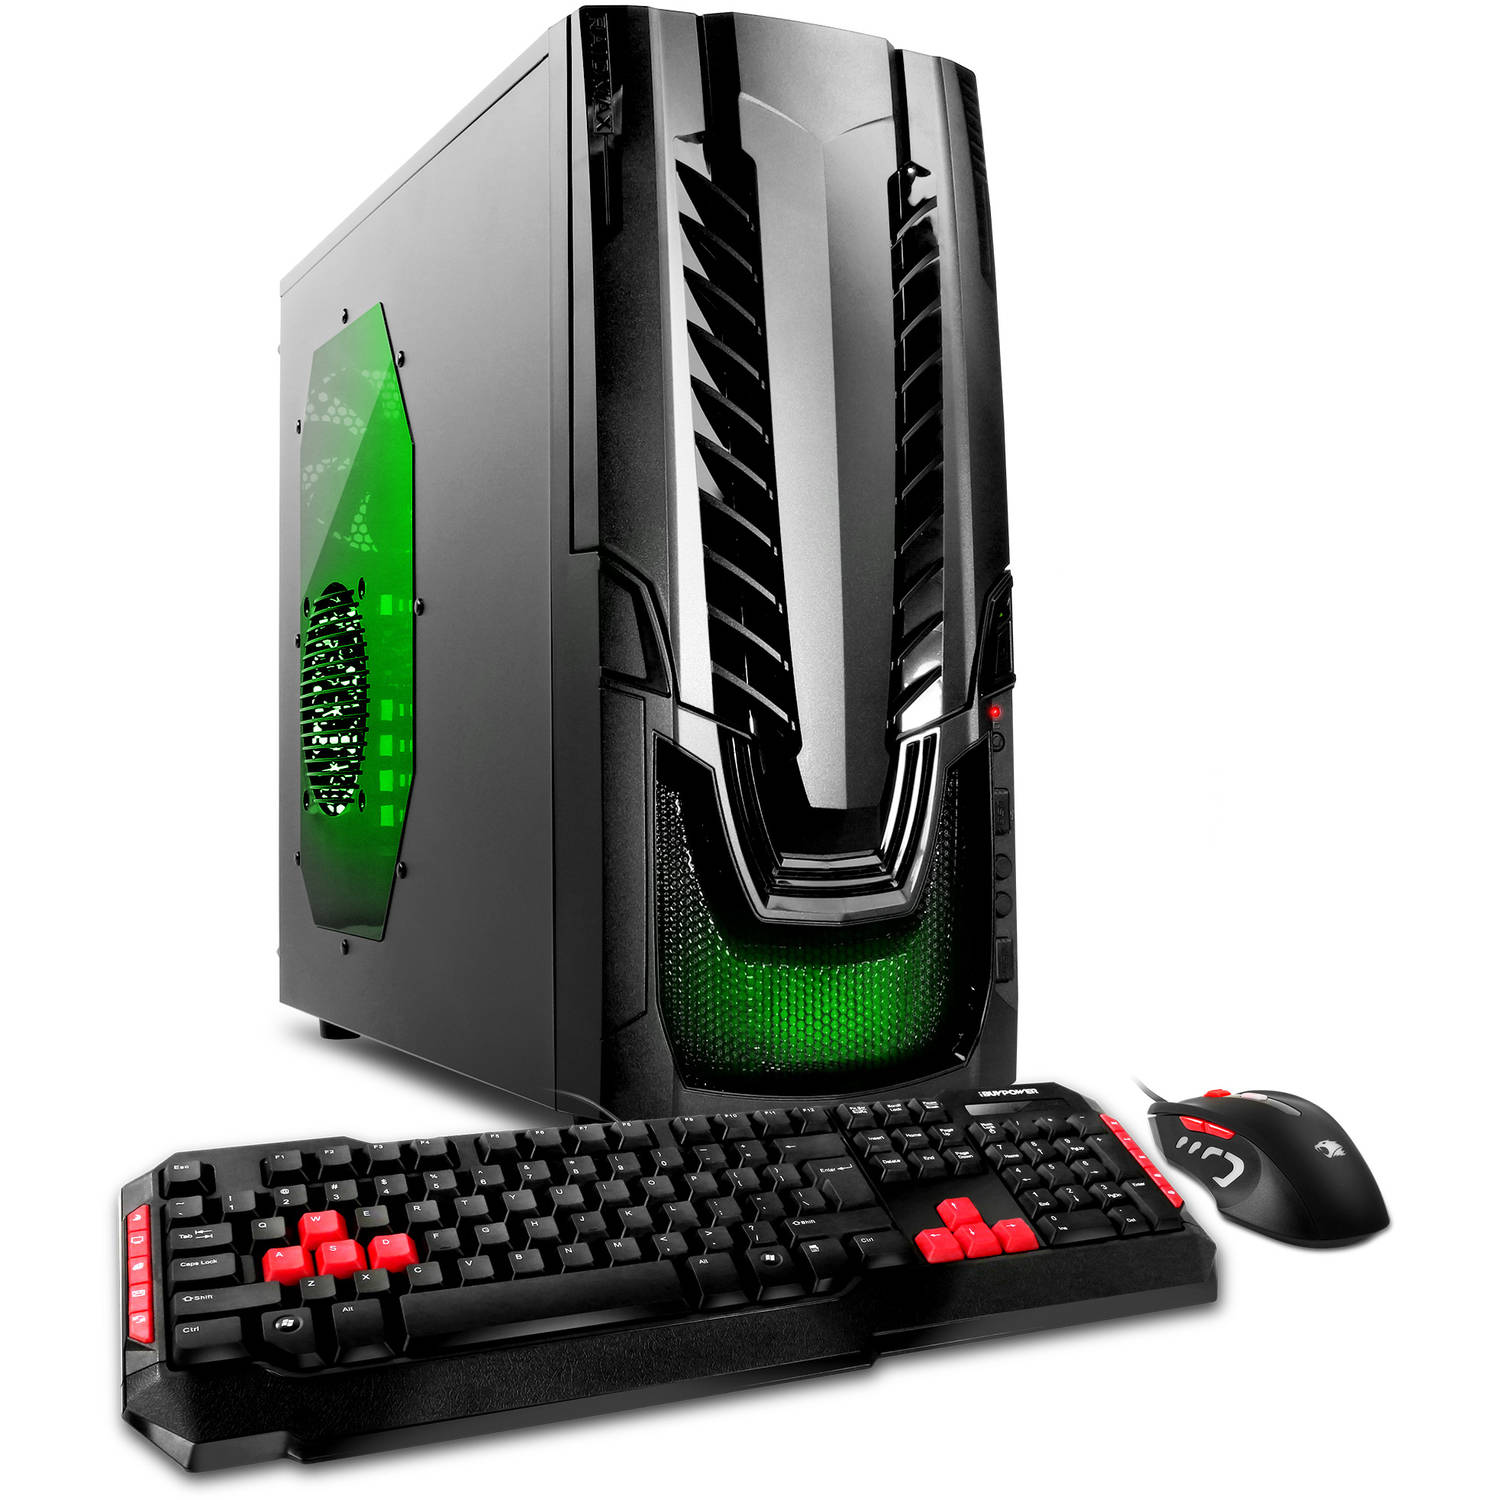 iBUYPOWER WA550Gi Gaming Desktop PC with Intel Skylake Core i5-6400 Quad-Core Processor, 8GB Memory, 1TB Hard Drive and Windows 10 Home (Monitor Not Included)